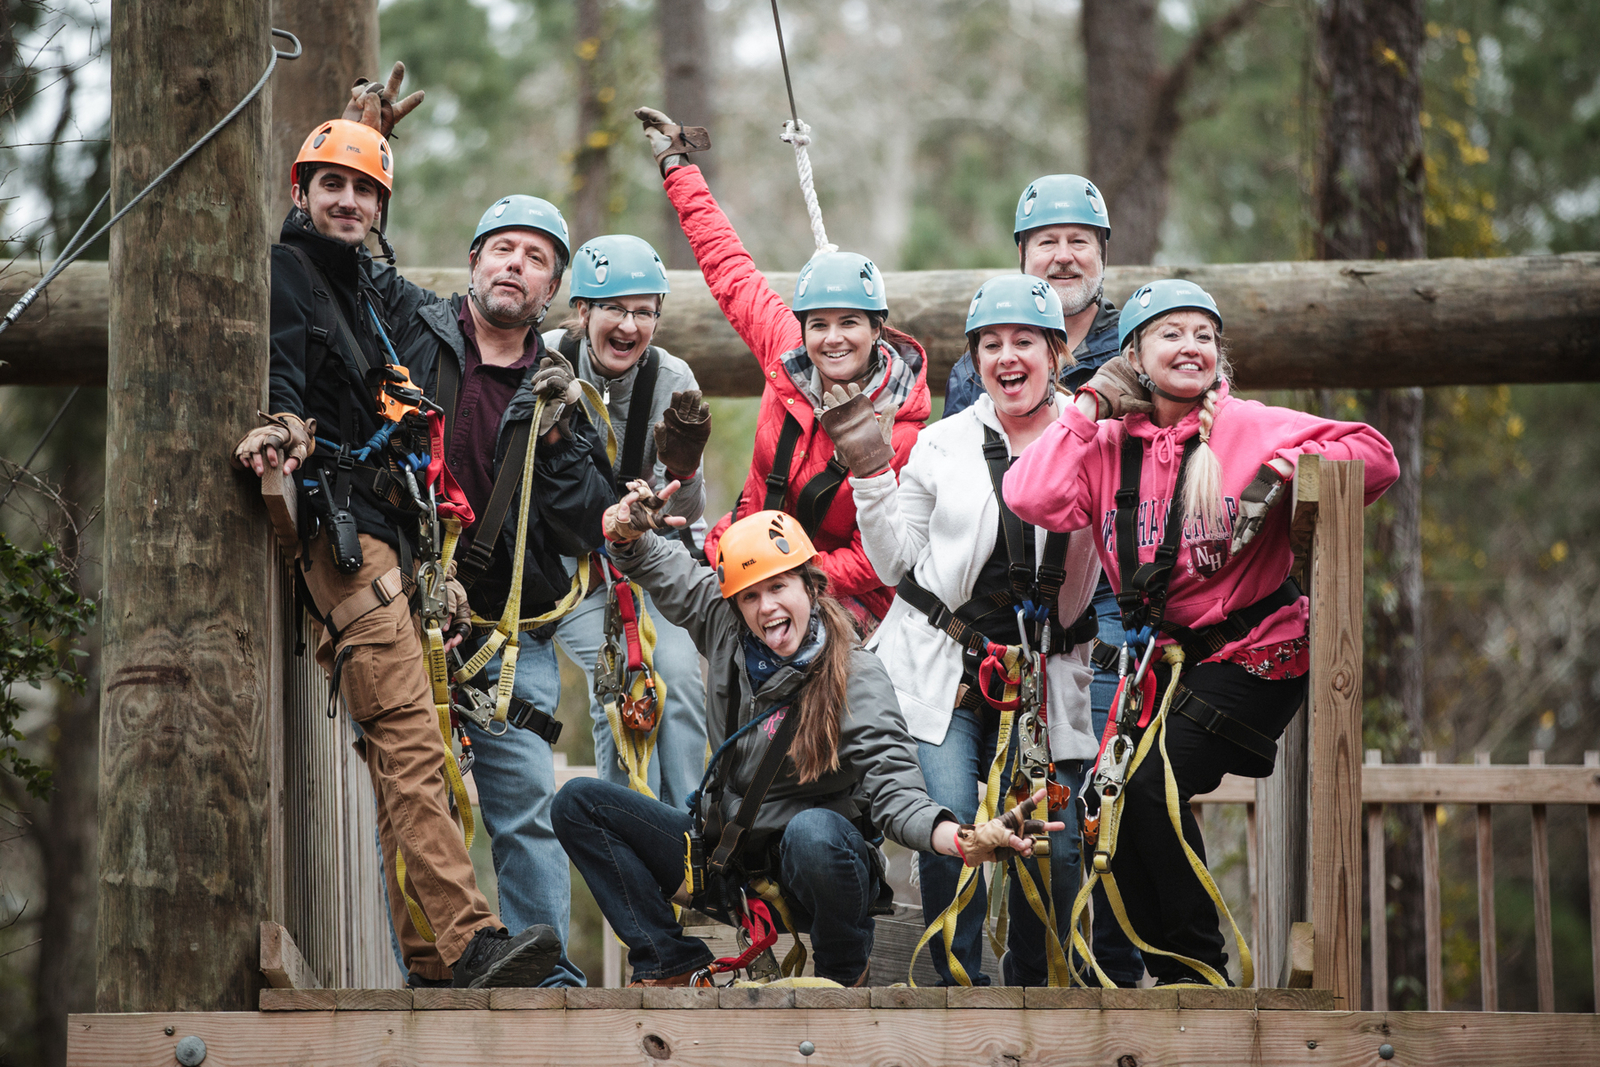 Why Charleston Zipline Adventures Should Host Your Next Company Teambuilding Event